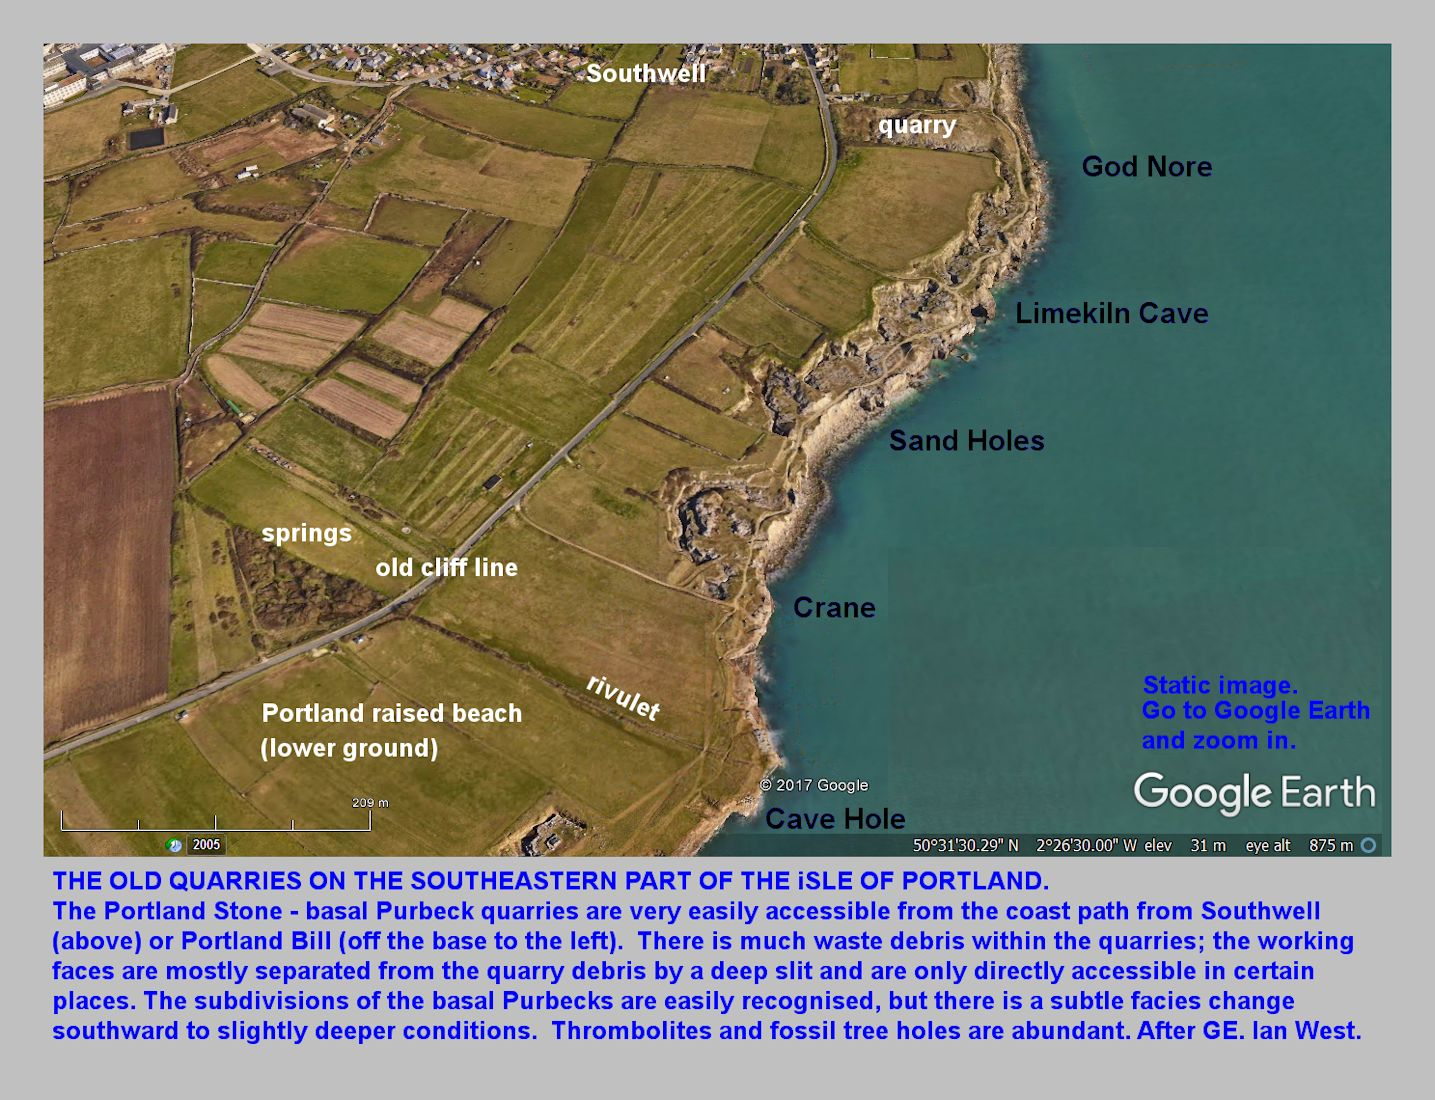 A GE view of the southeastern part of the Isle of Portland, Dorset, showing the location of the old coastal quarries